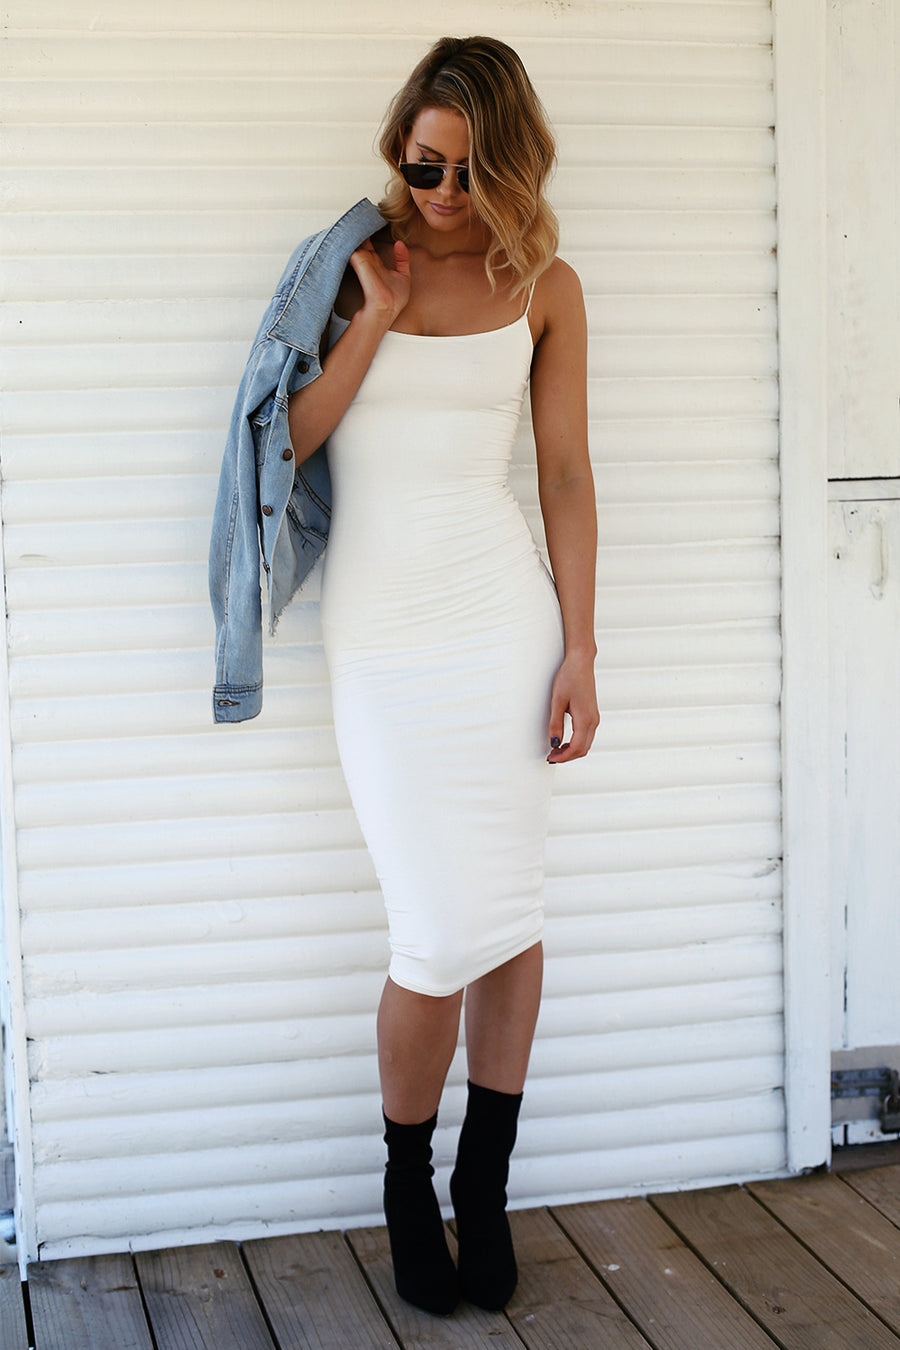 PRE-ORDER Kimmy K Slip Dress in White